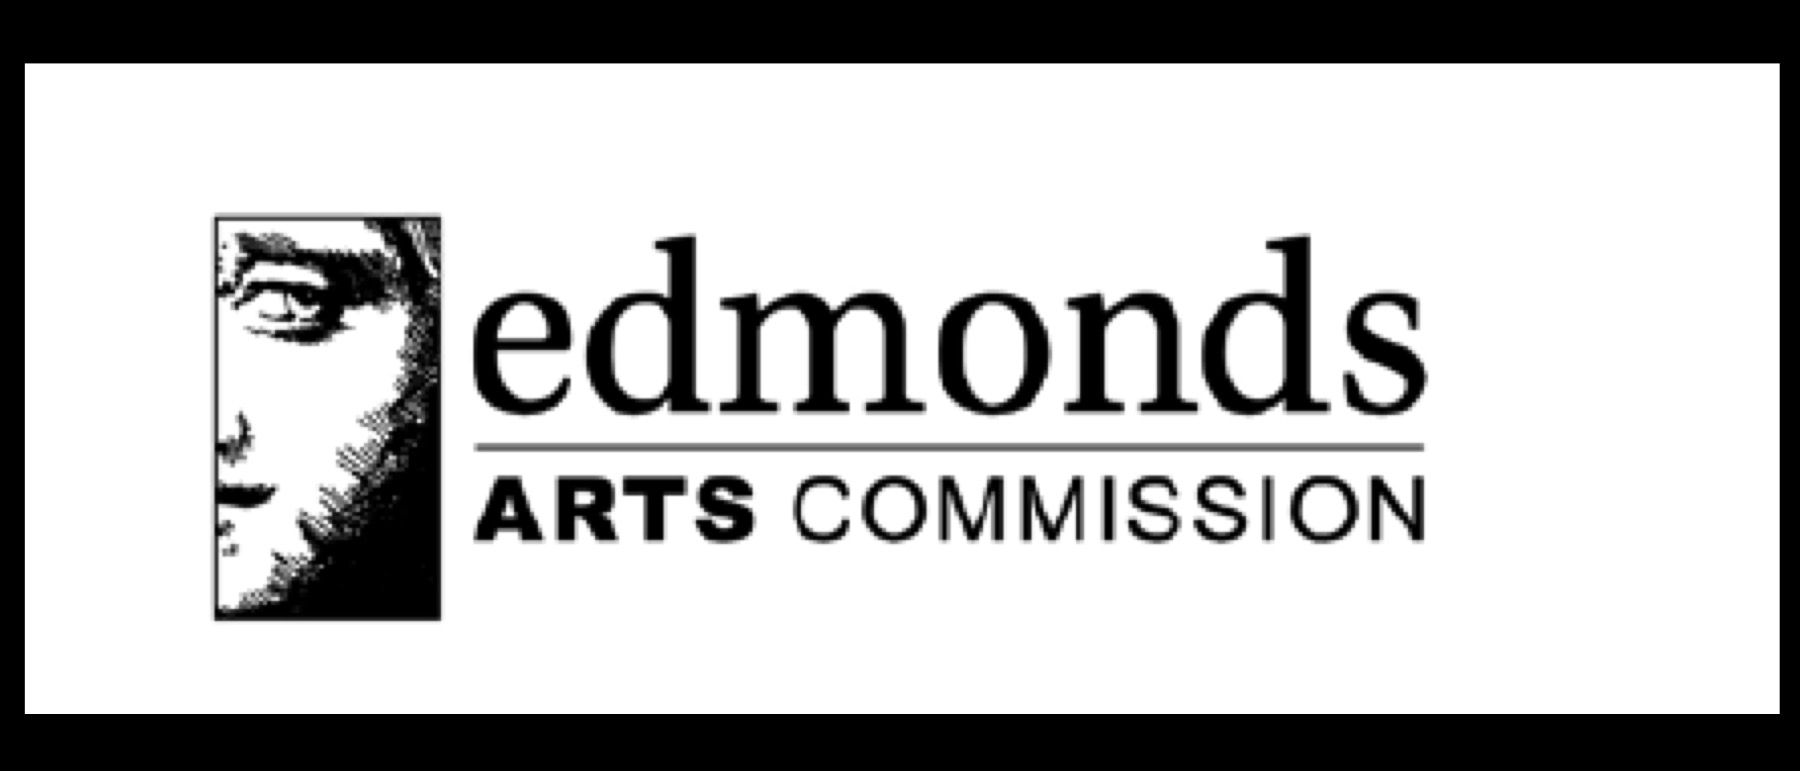 Edmonds Arts Commission posts opportunity to serve the